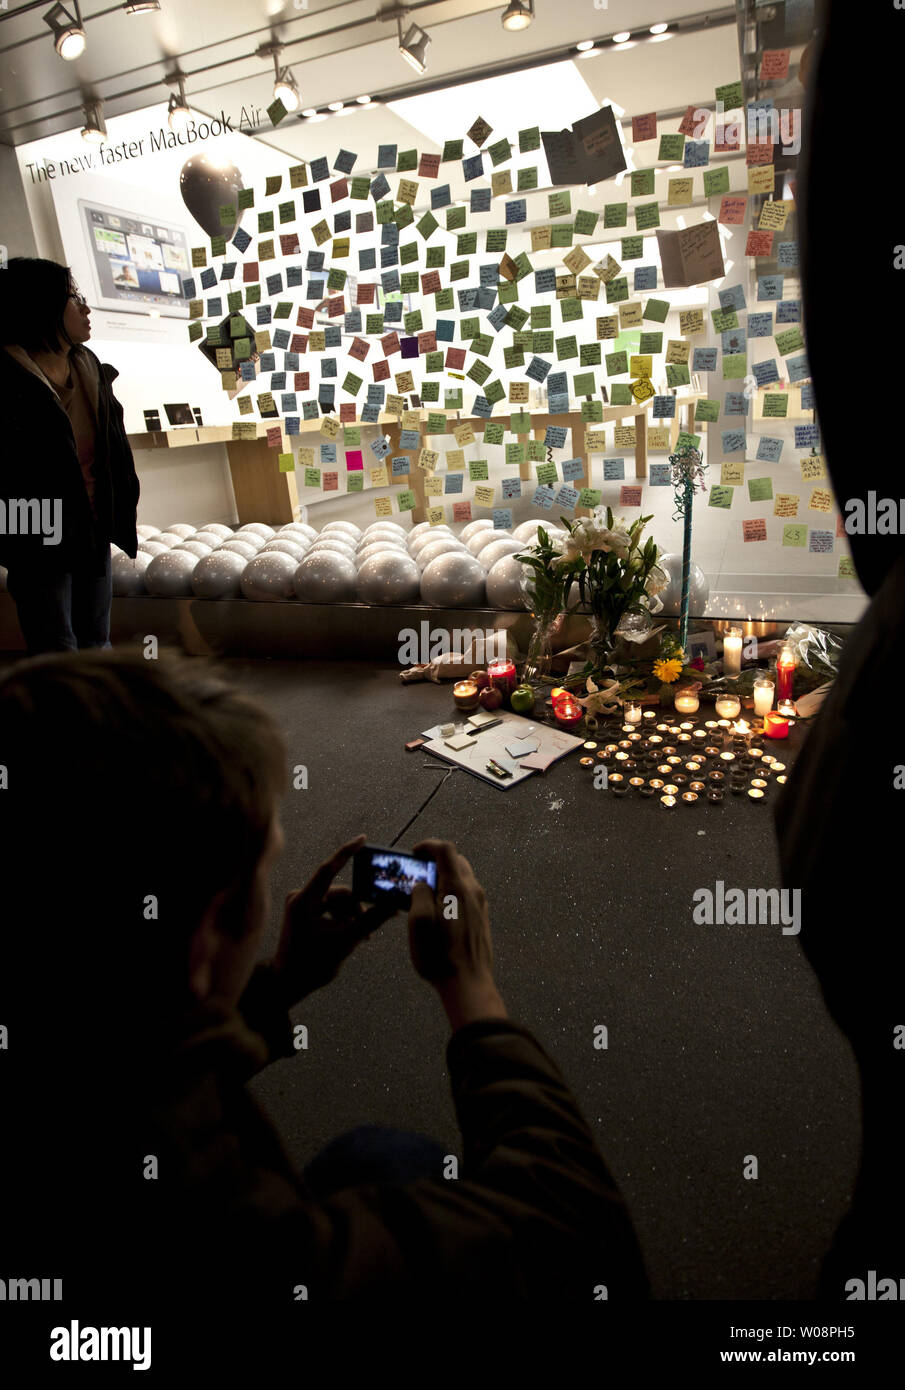 Uses Death Stock Photos & Uses Death Stock Images - Alamy